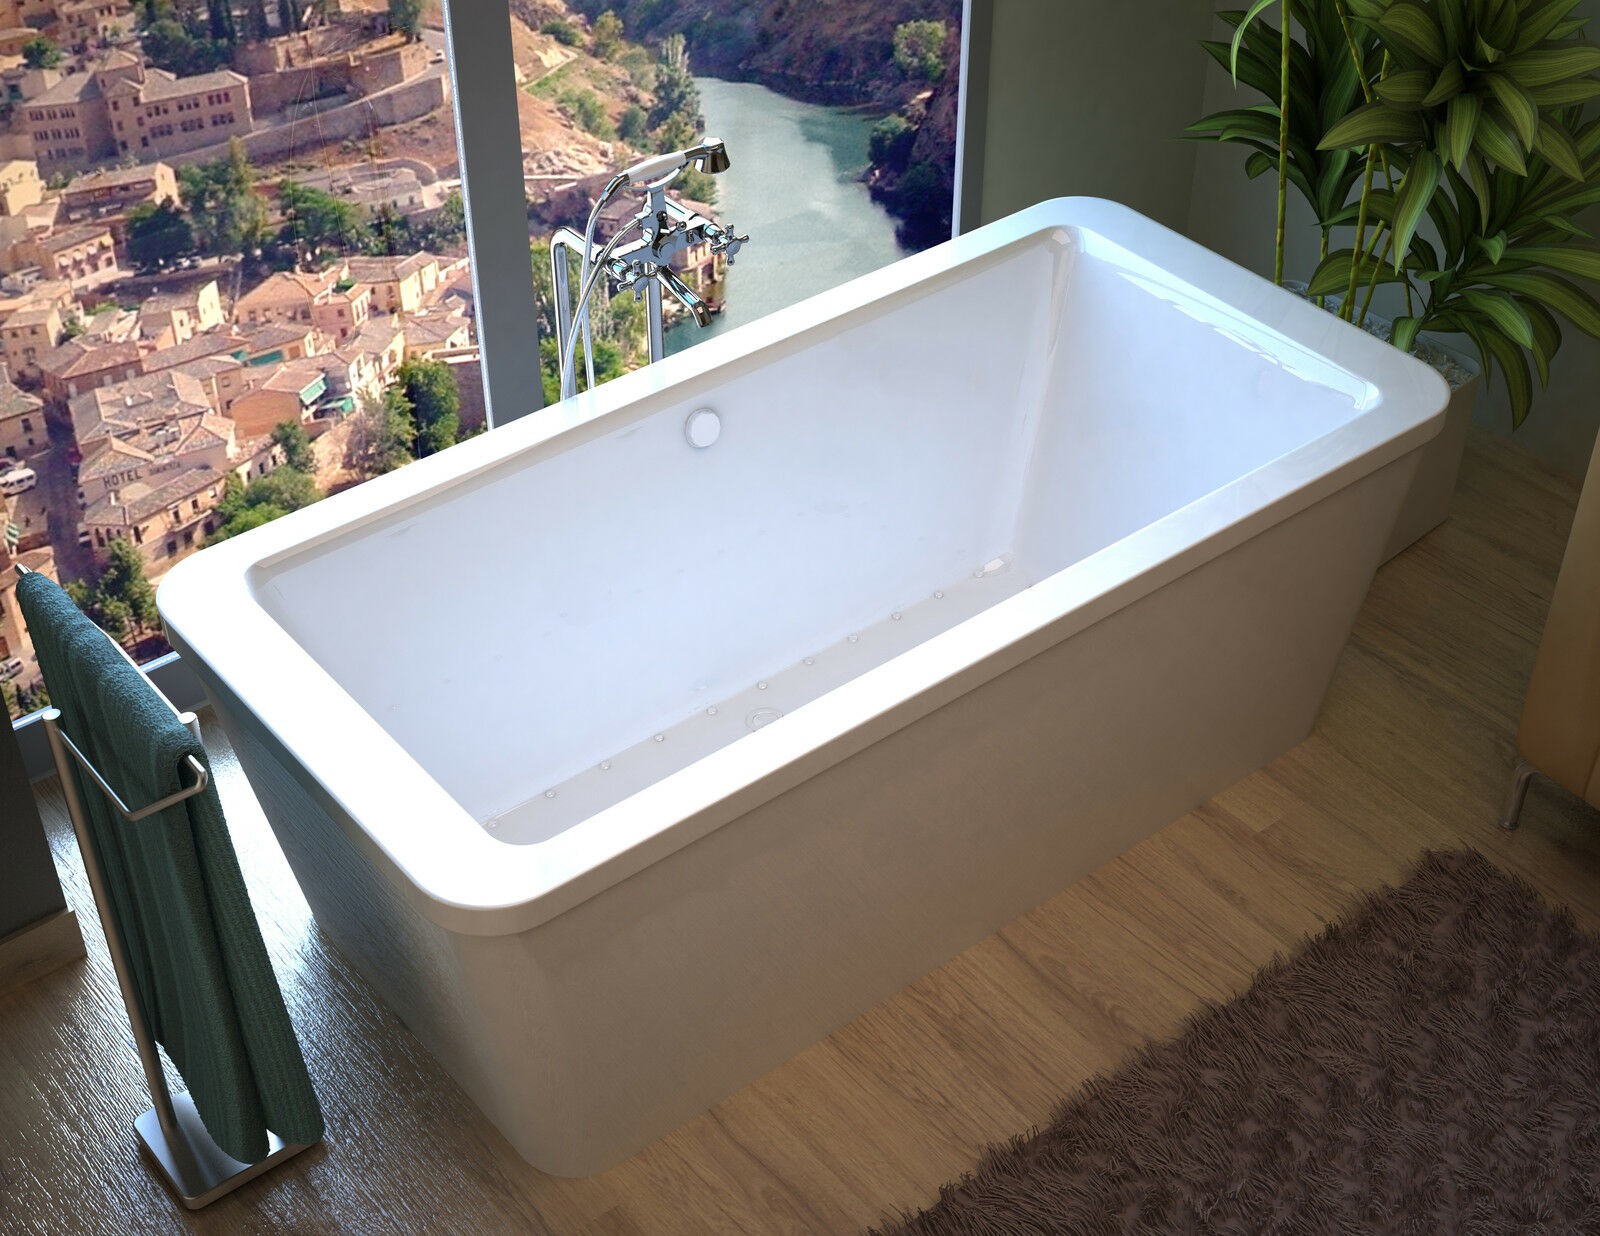 Lautrec 34 X 67 Rectangular Freestanding Air Jetted Bathtub With ...